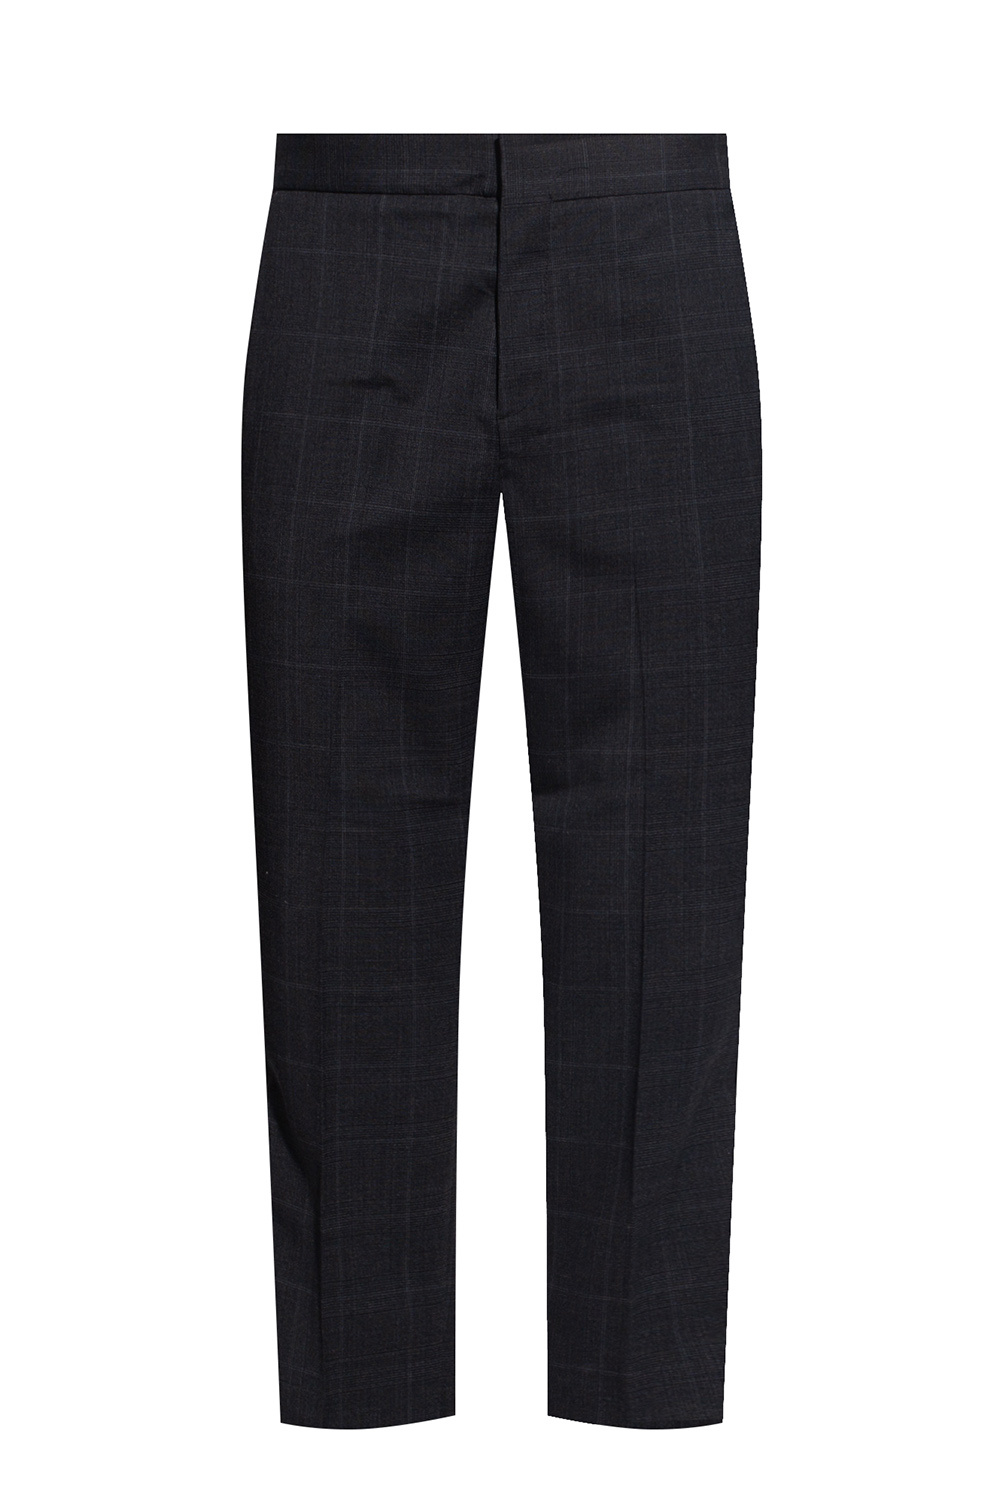 AllSaints 'Garth' checked trousers